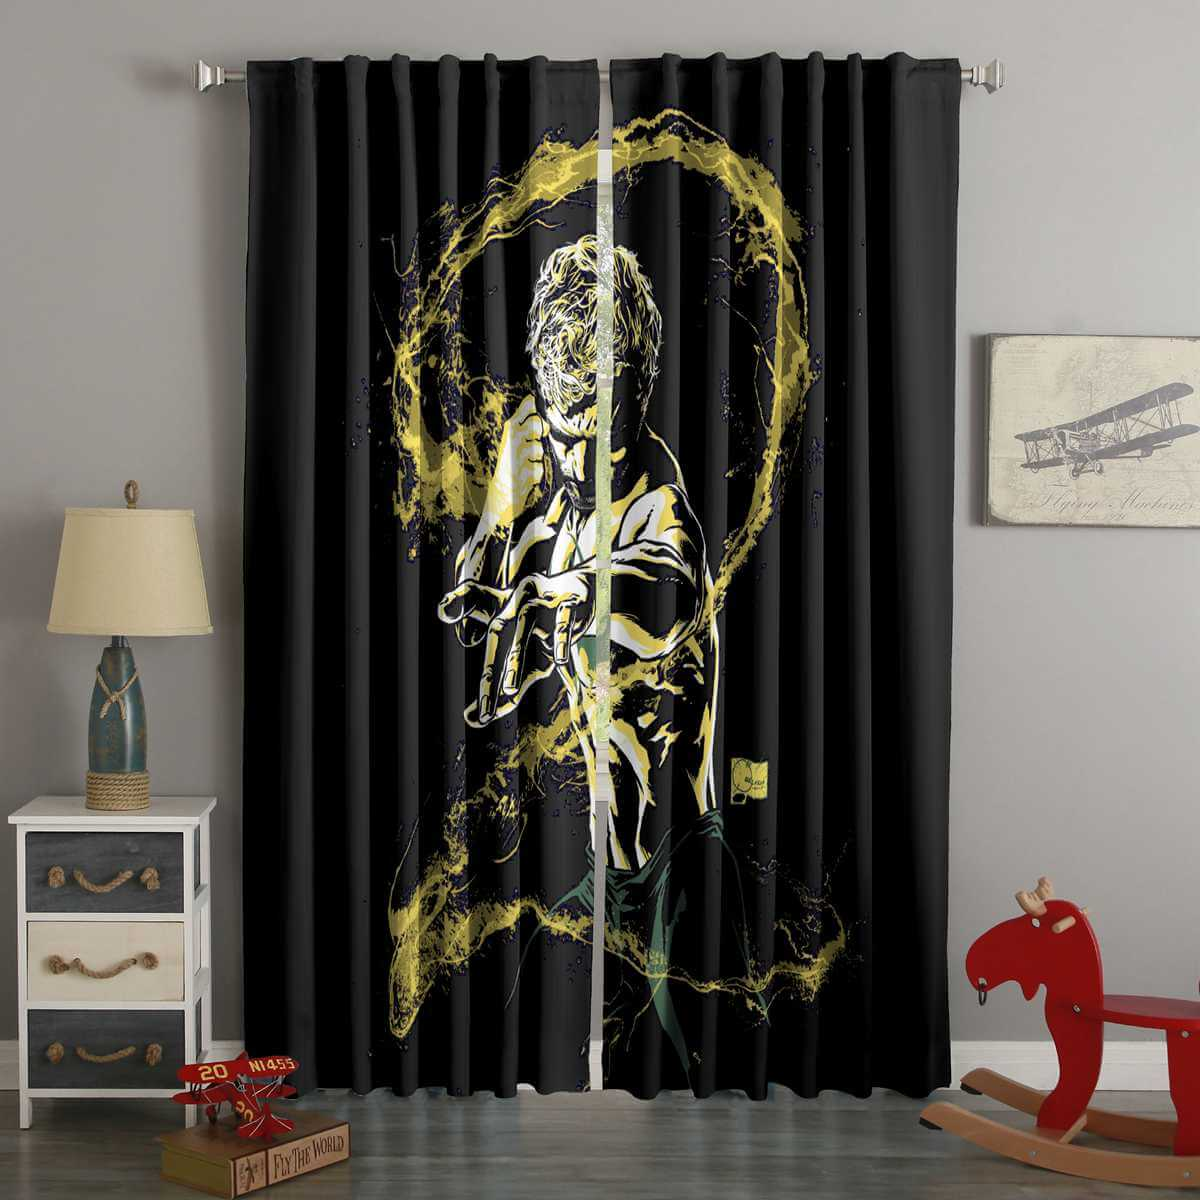 3D Printed Iron Fist Style Custom Living Room Curtains